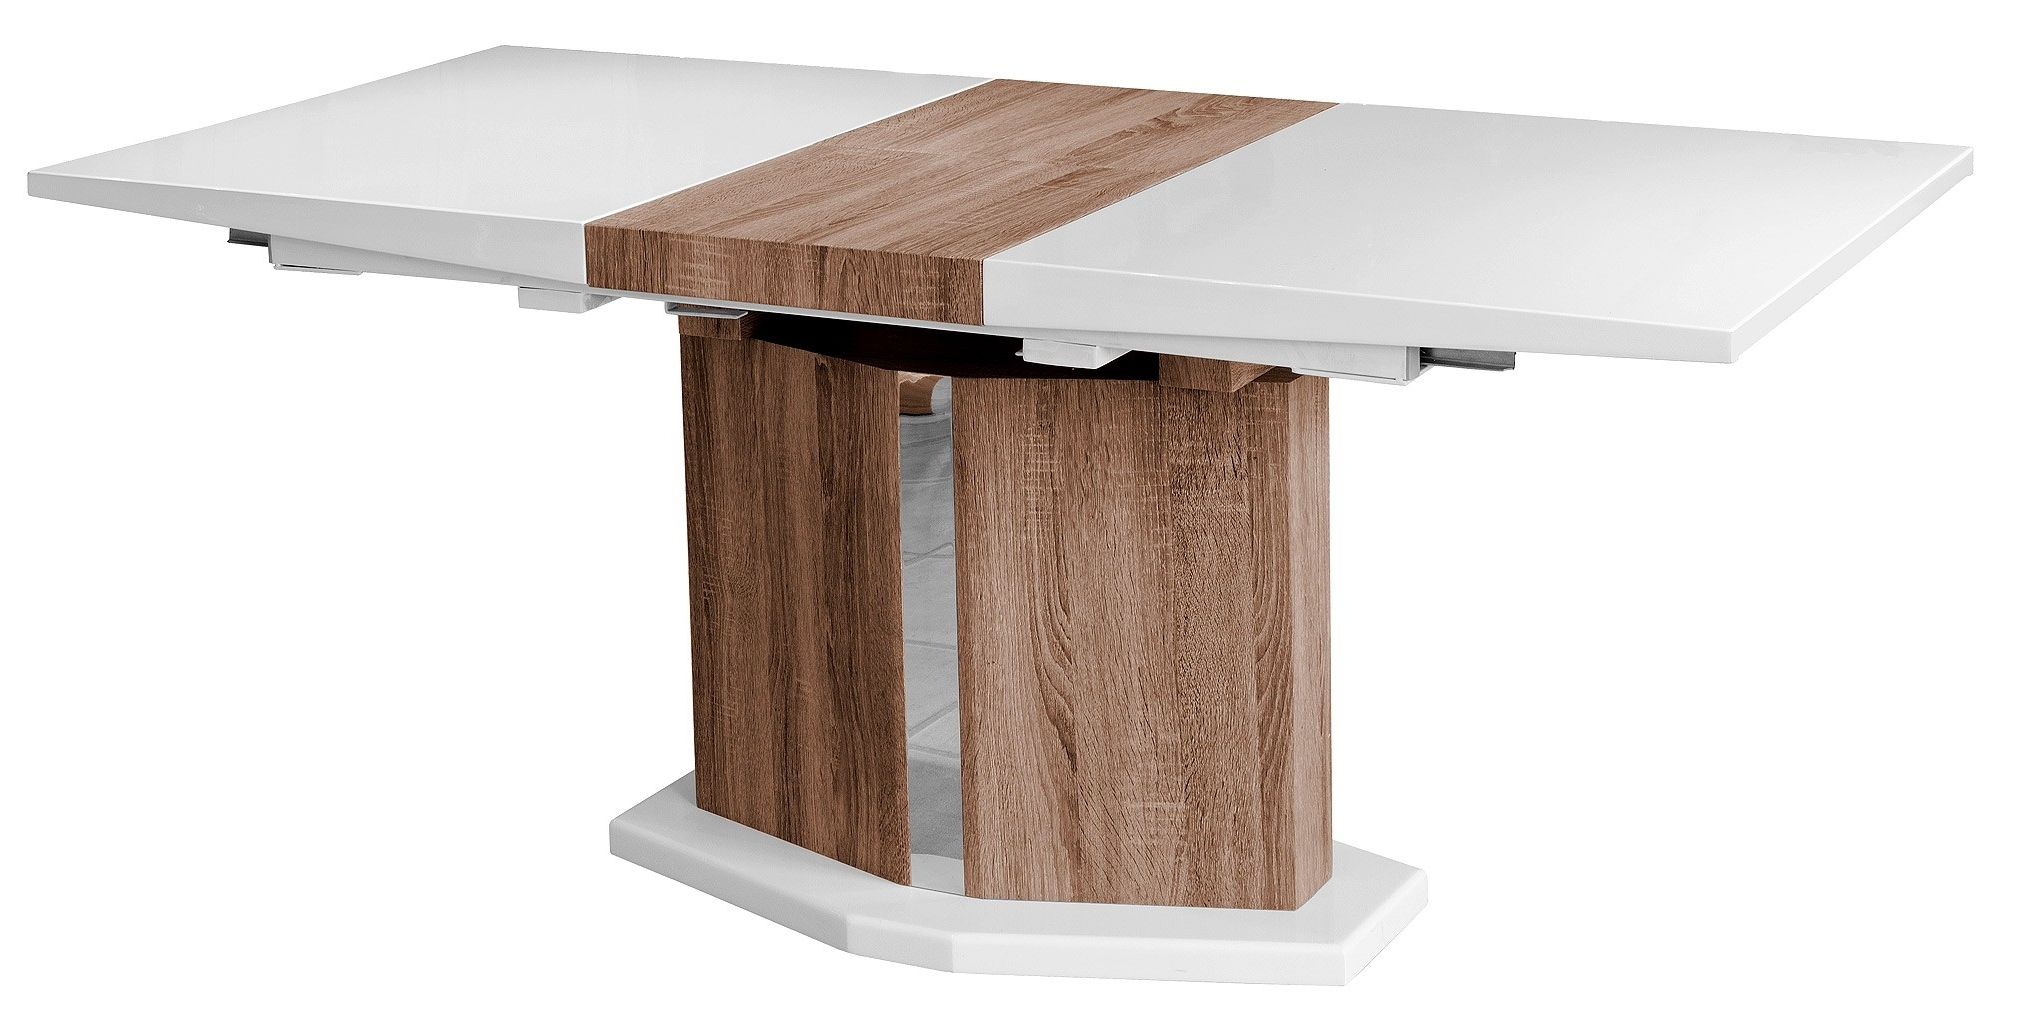 High Gloss White Extending Dining Table - Be Fabulous! regarding Best and Newest Black Gloss Extending Dining Tables